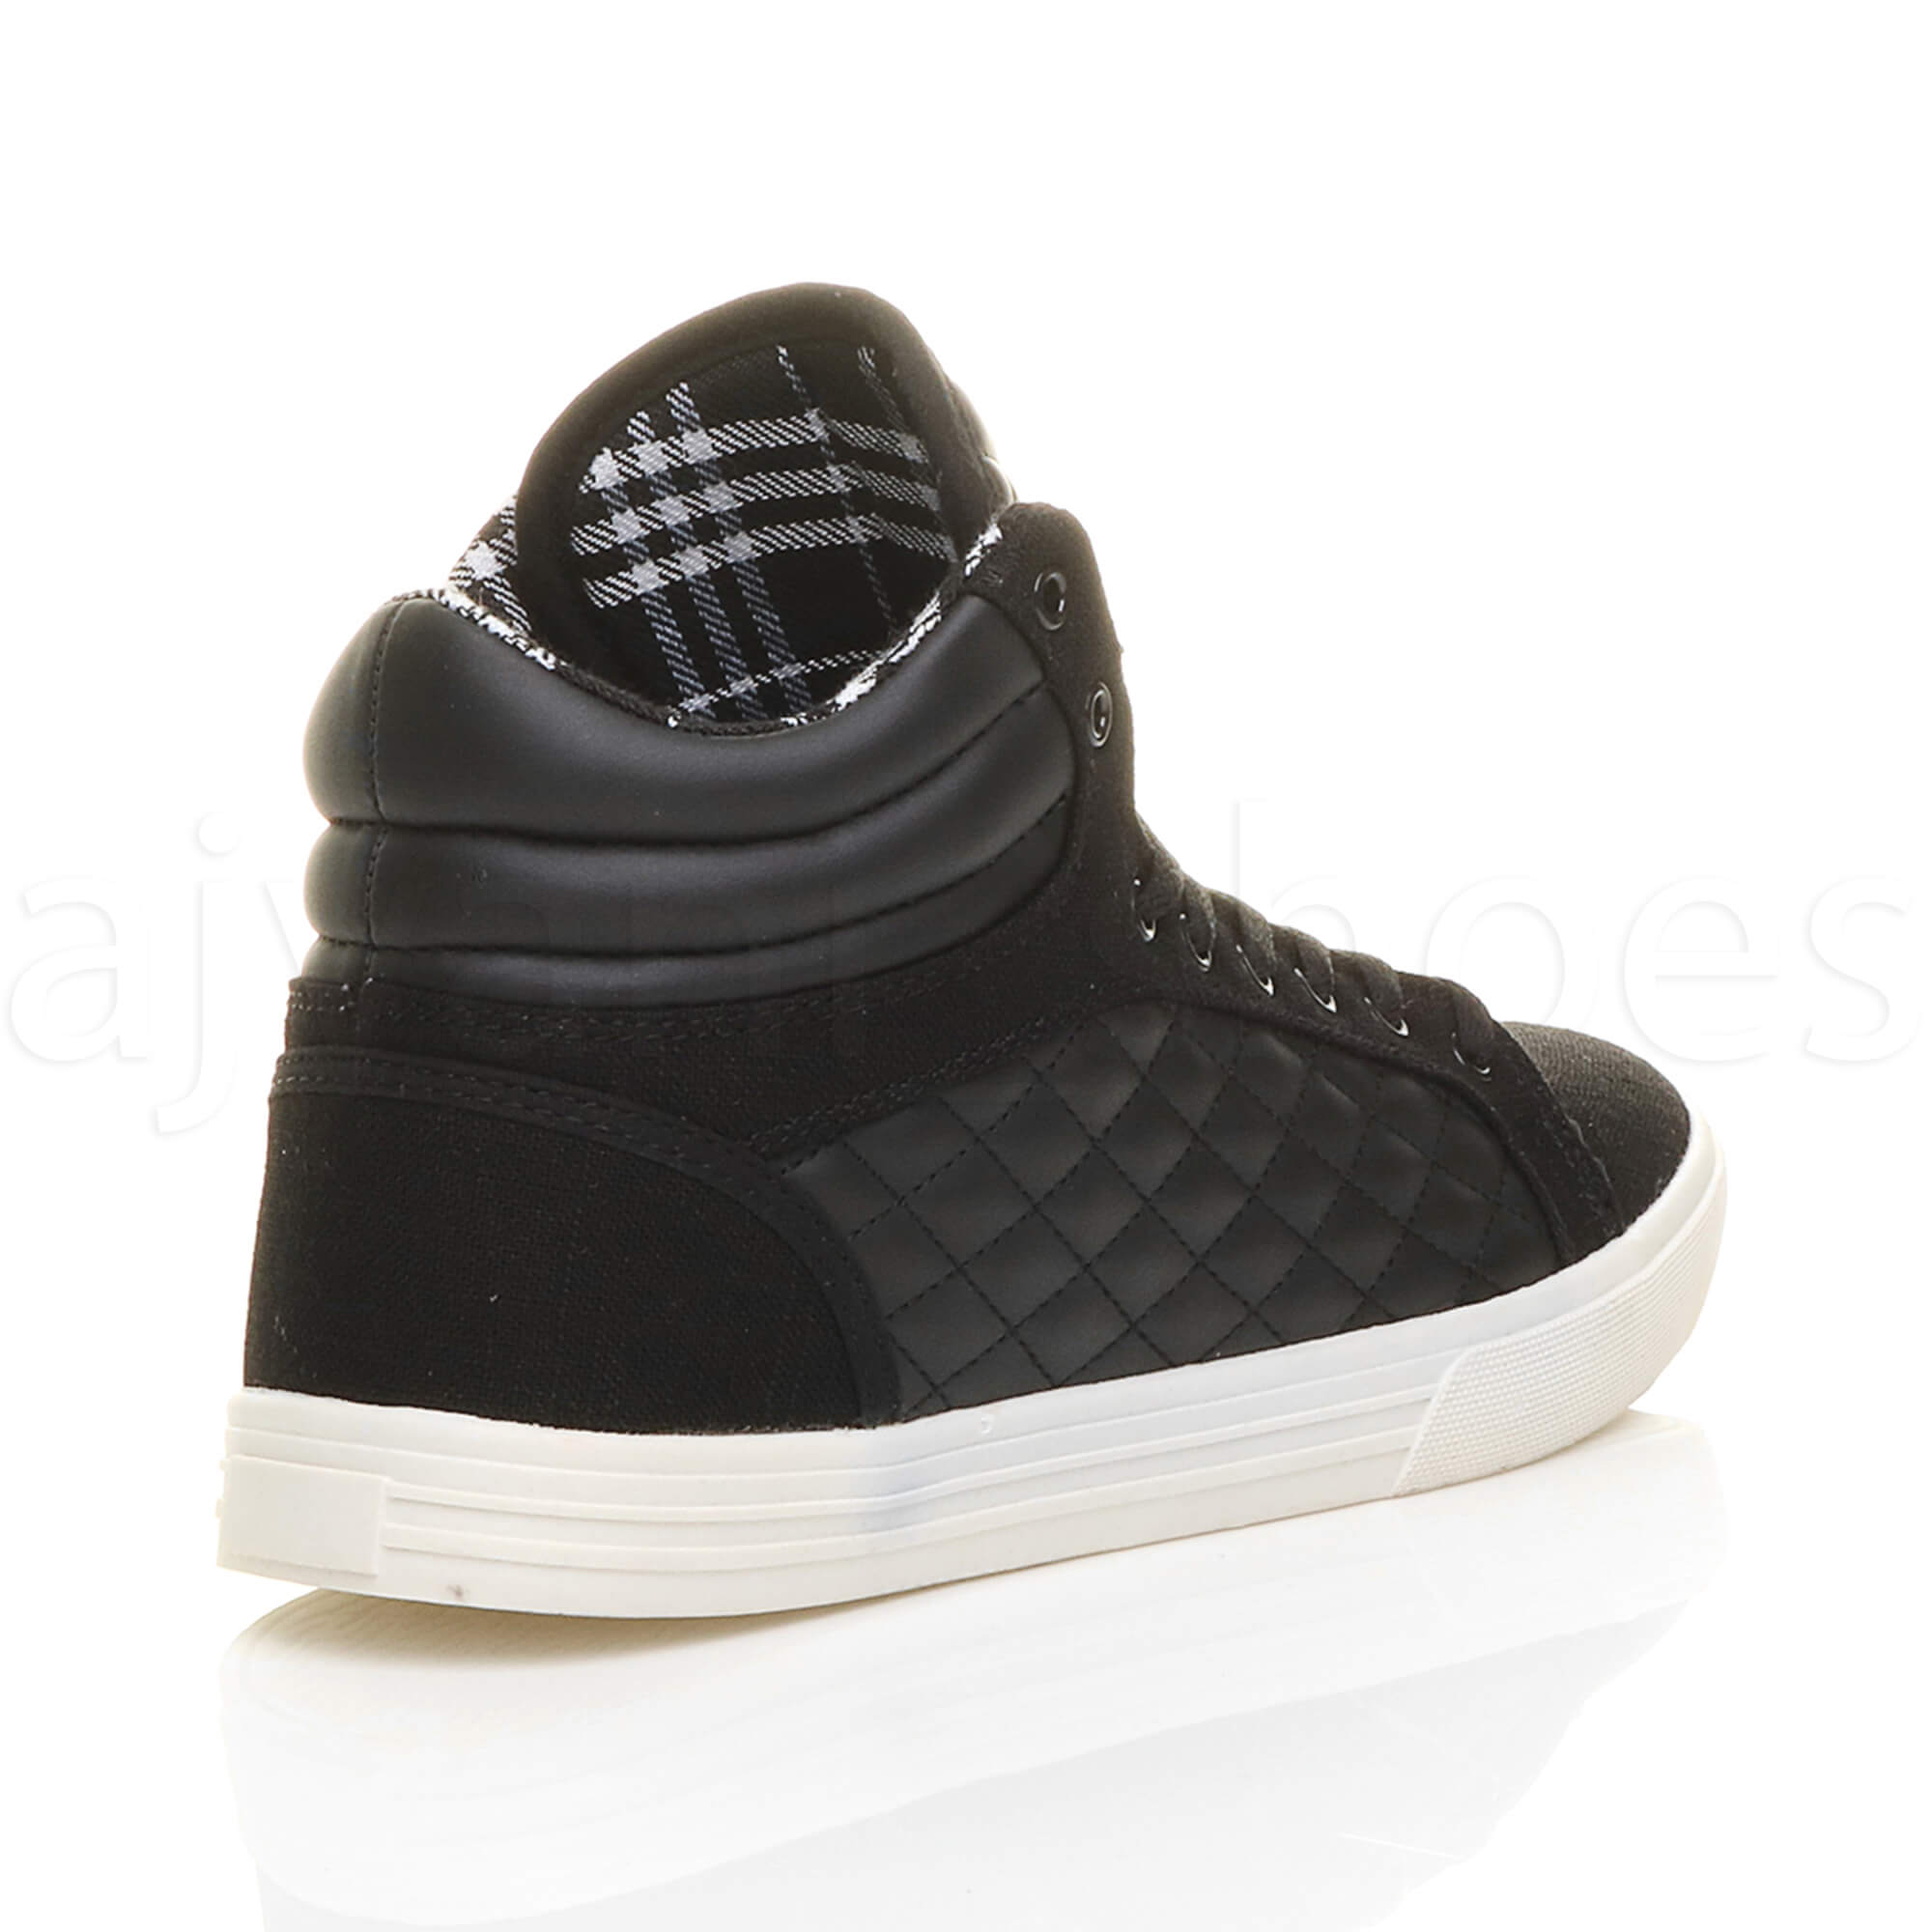 MENS-QUILTED-LACE-UP-FLAT-CASUAL-HI-HIGH-TOP-TRAINERS-SHOES-ANKLE-BOOTS-SIZE thumbnail 5